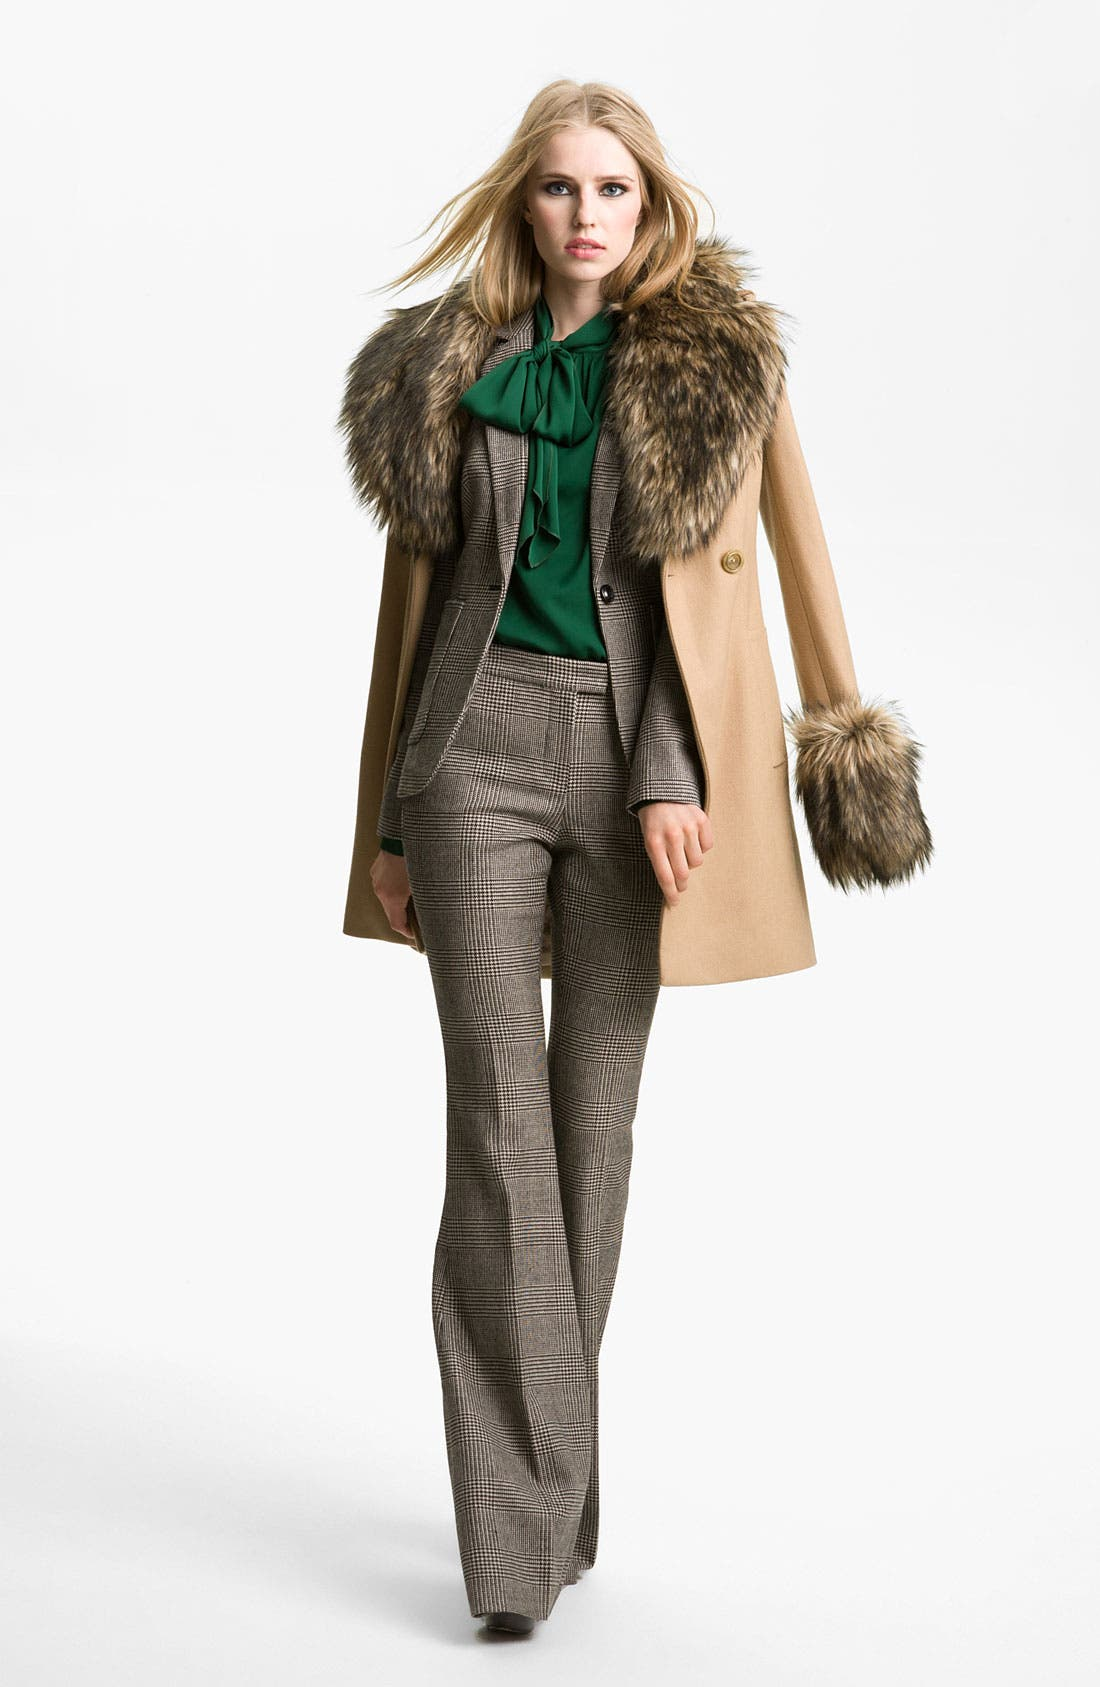 Main Image - Rachel Zoe 'Trish' Faux Fur Trim Peacoat